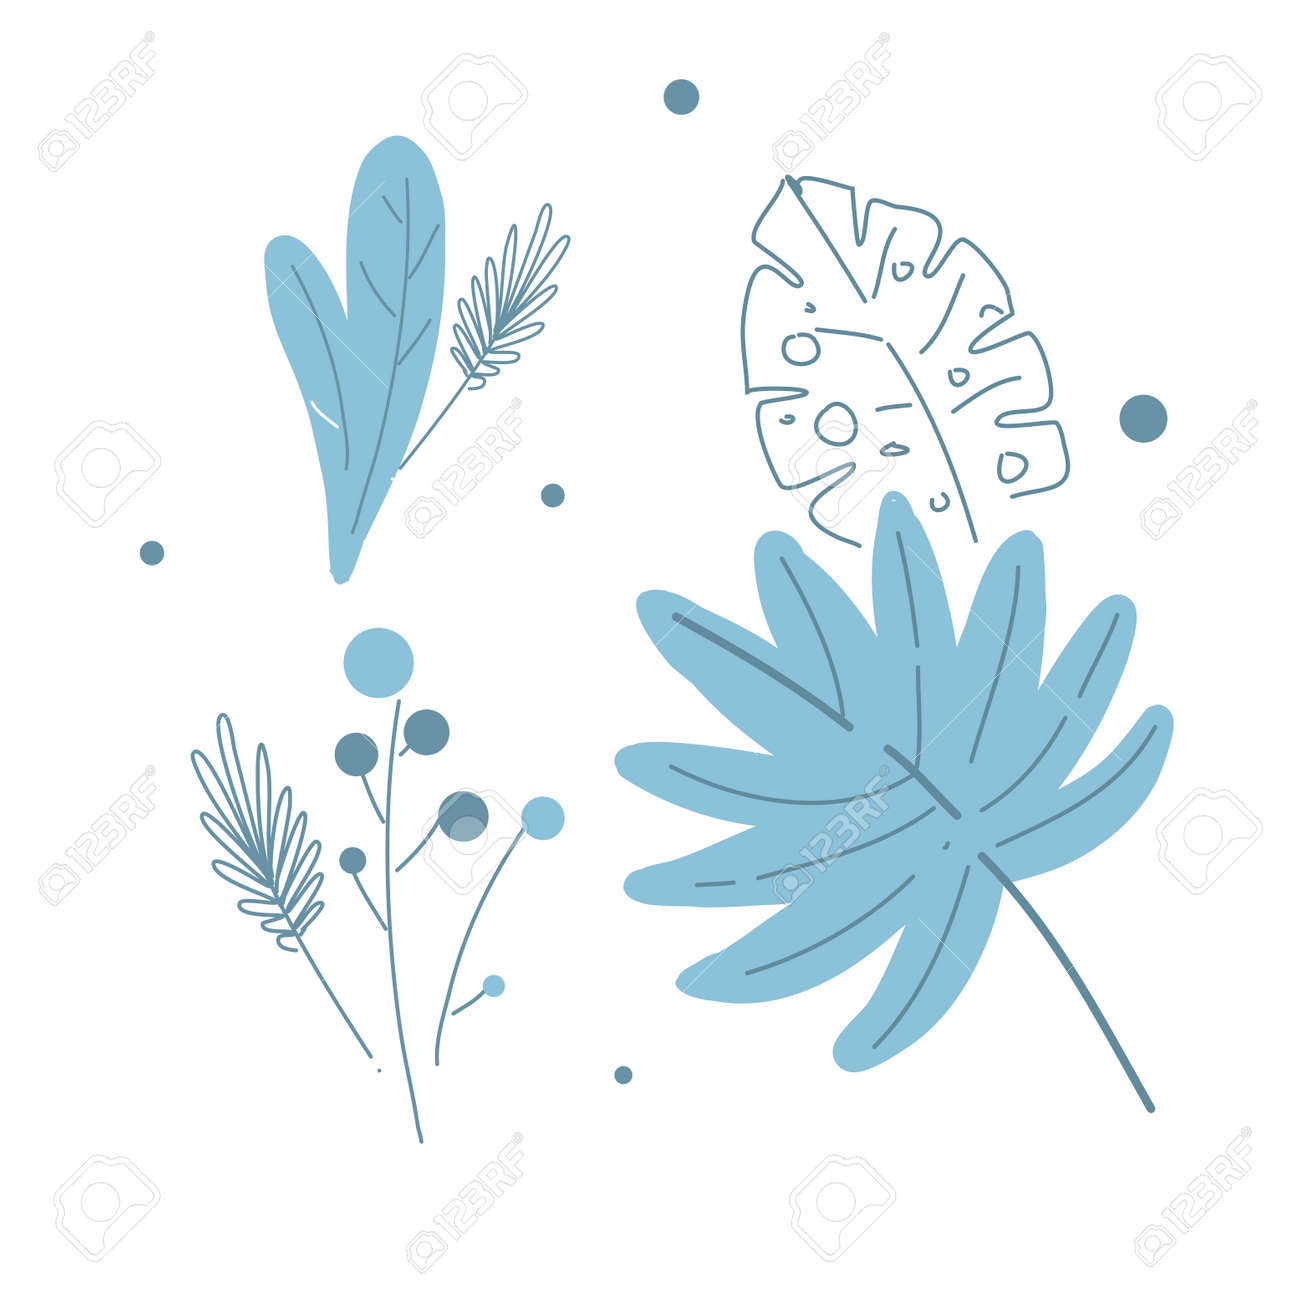 Modern floral leaves and berries, line and shape drawing style vector illustration - 164110829